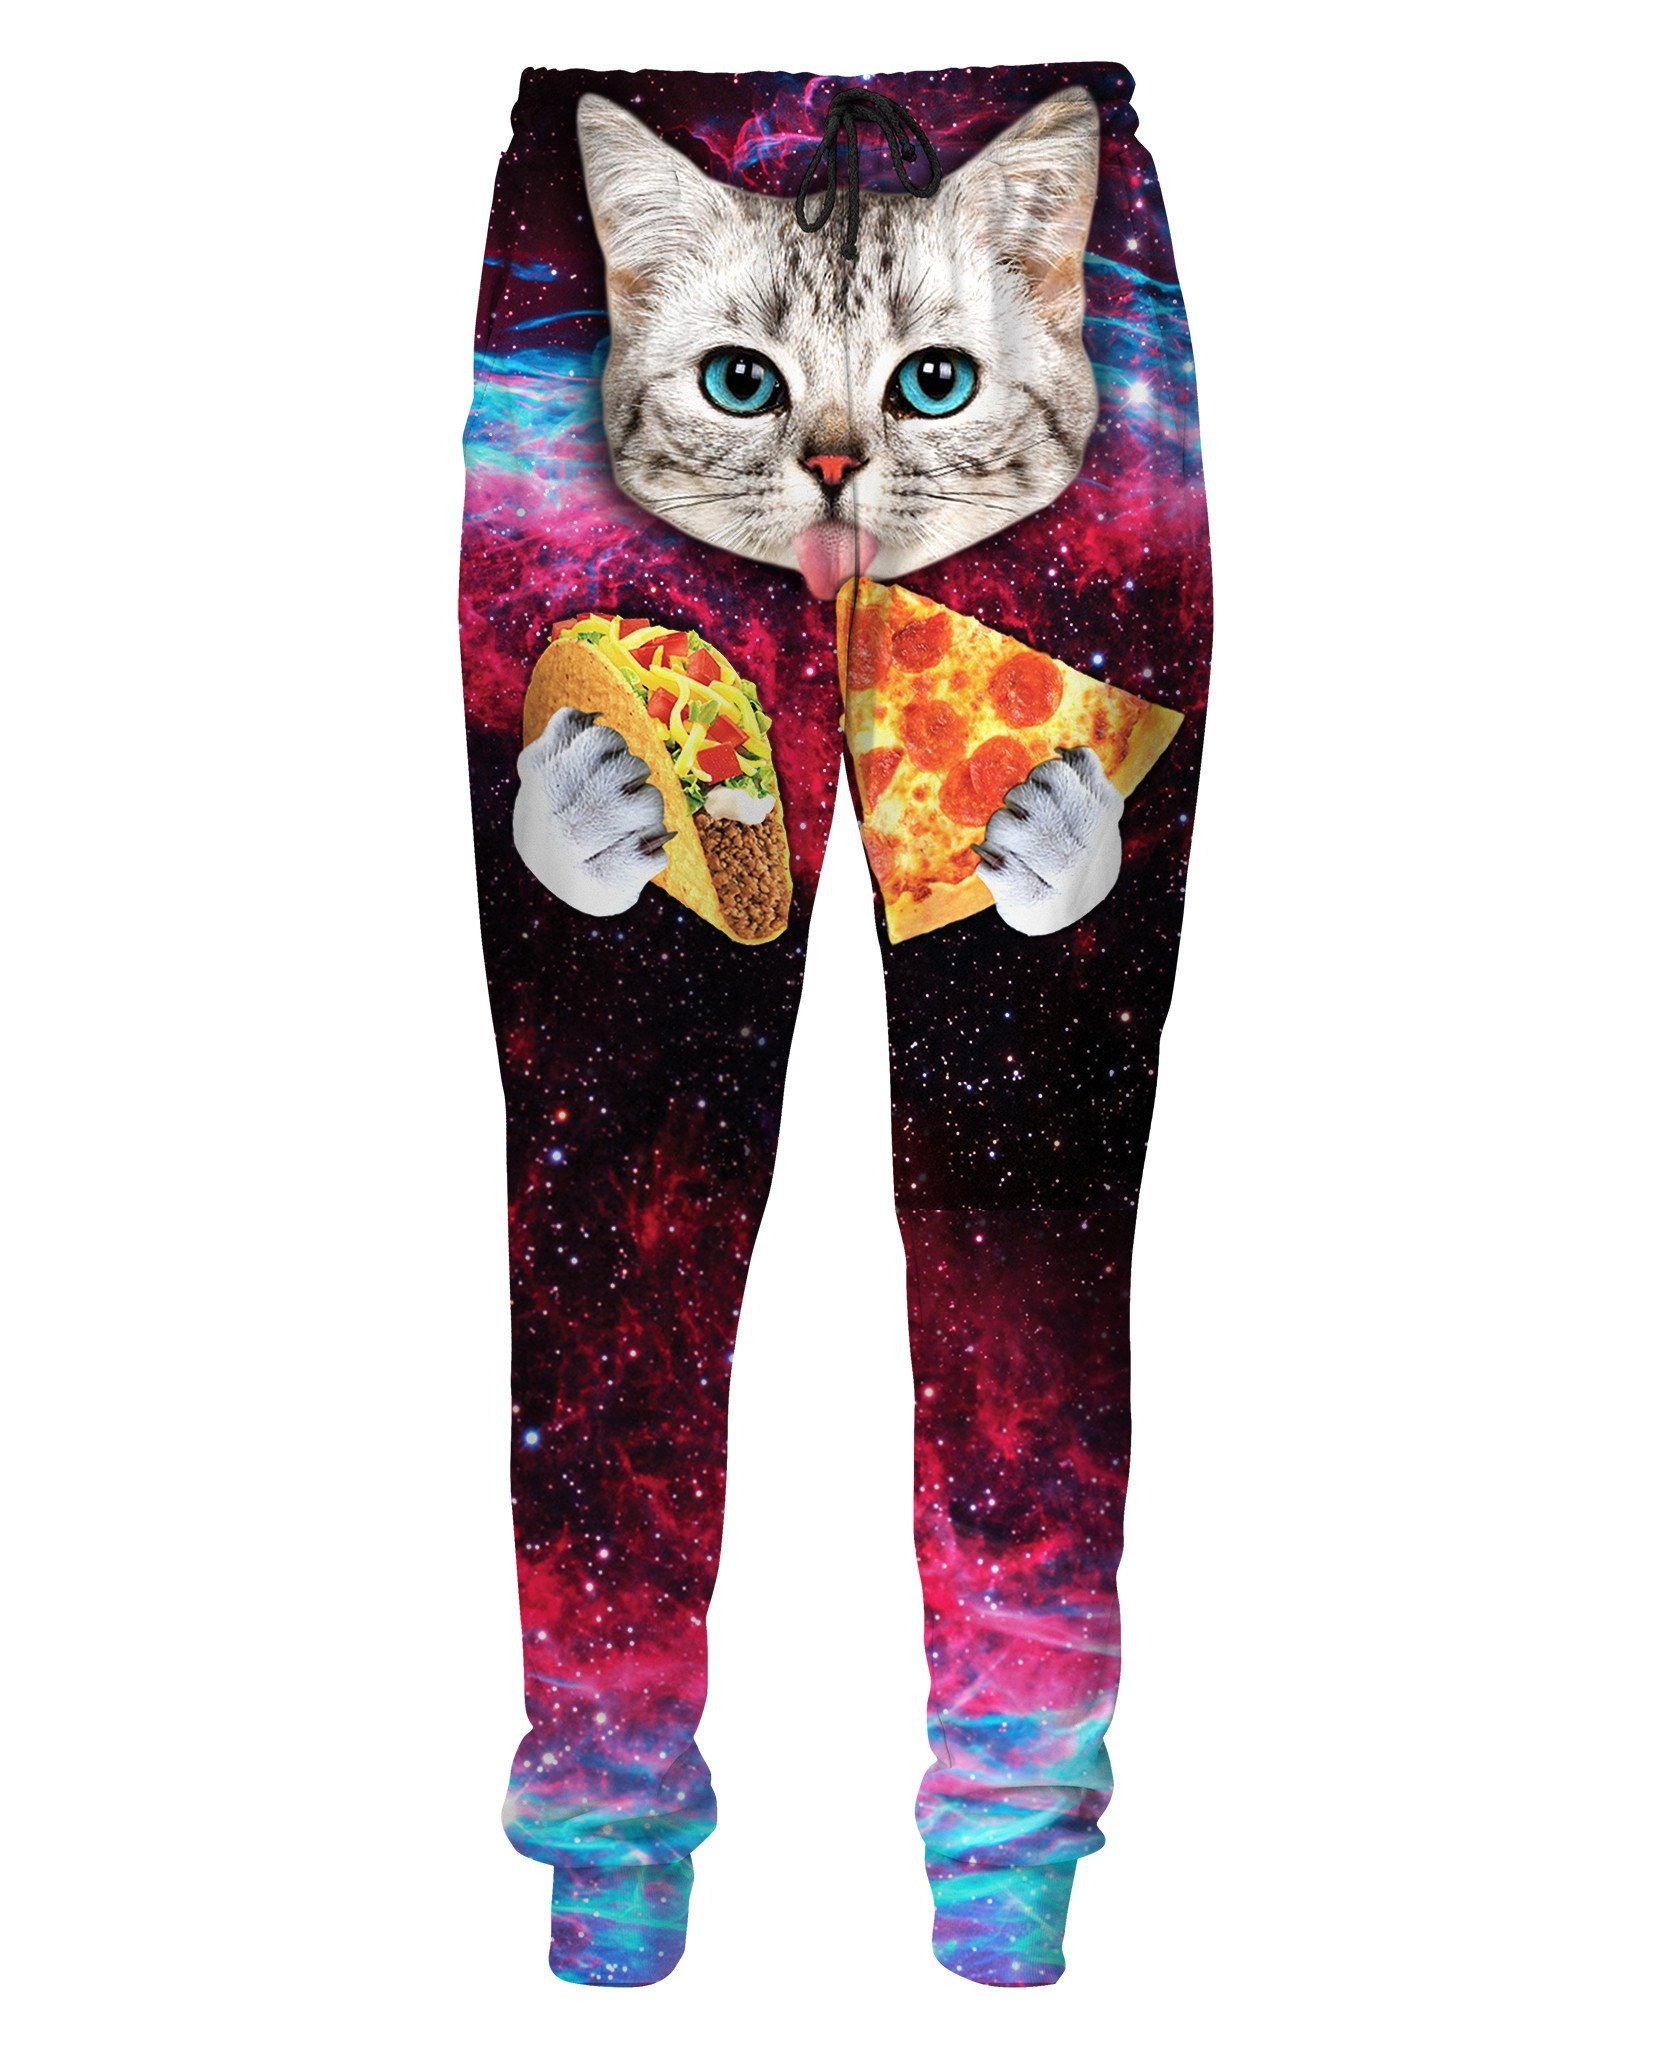 These Taco Cat Sweatpants features a cute cat with blue eyes eating tacos  and pizza in space! Get these vibrant sweatpants for your closet at RageOn!  for ... d7ca587cc